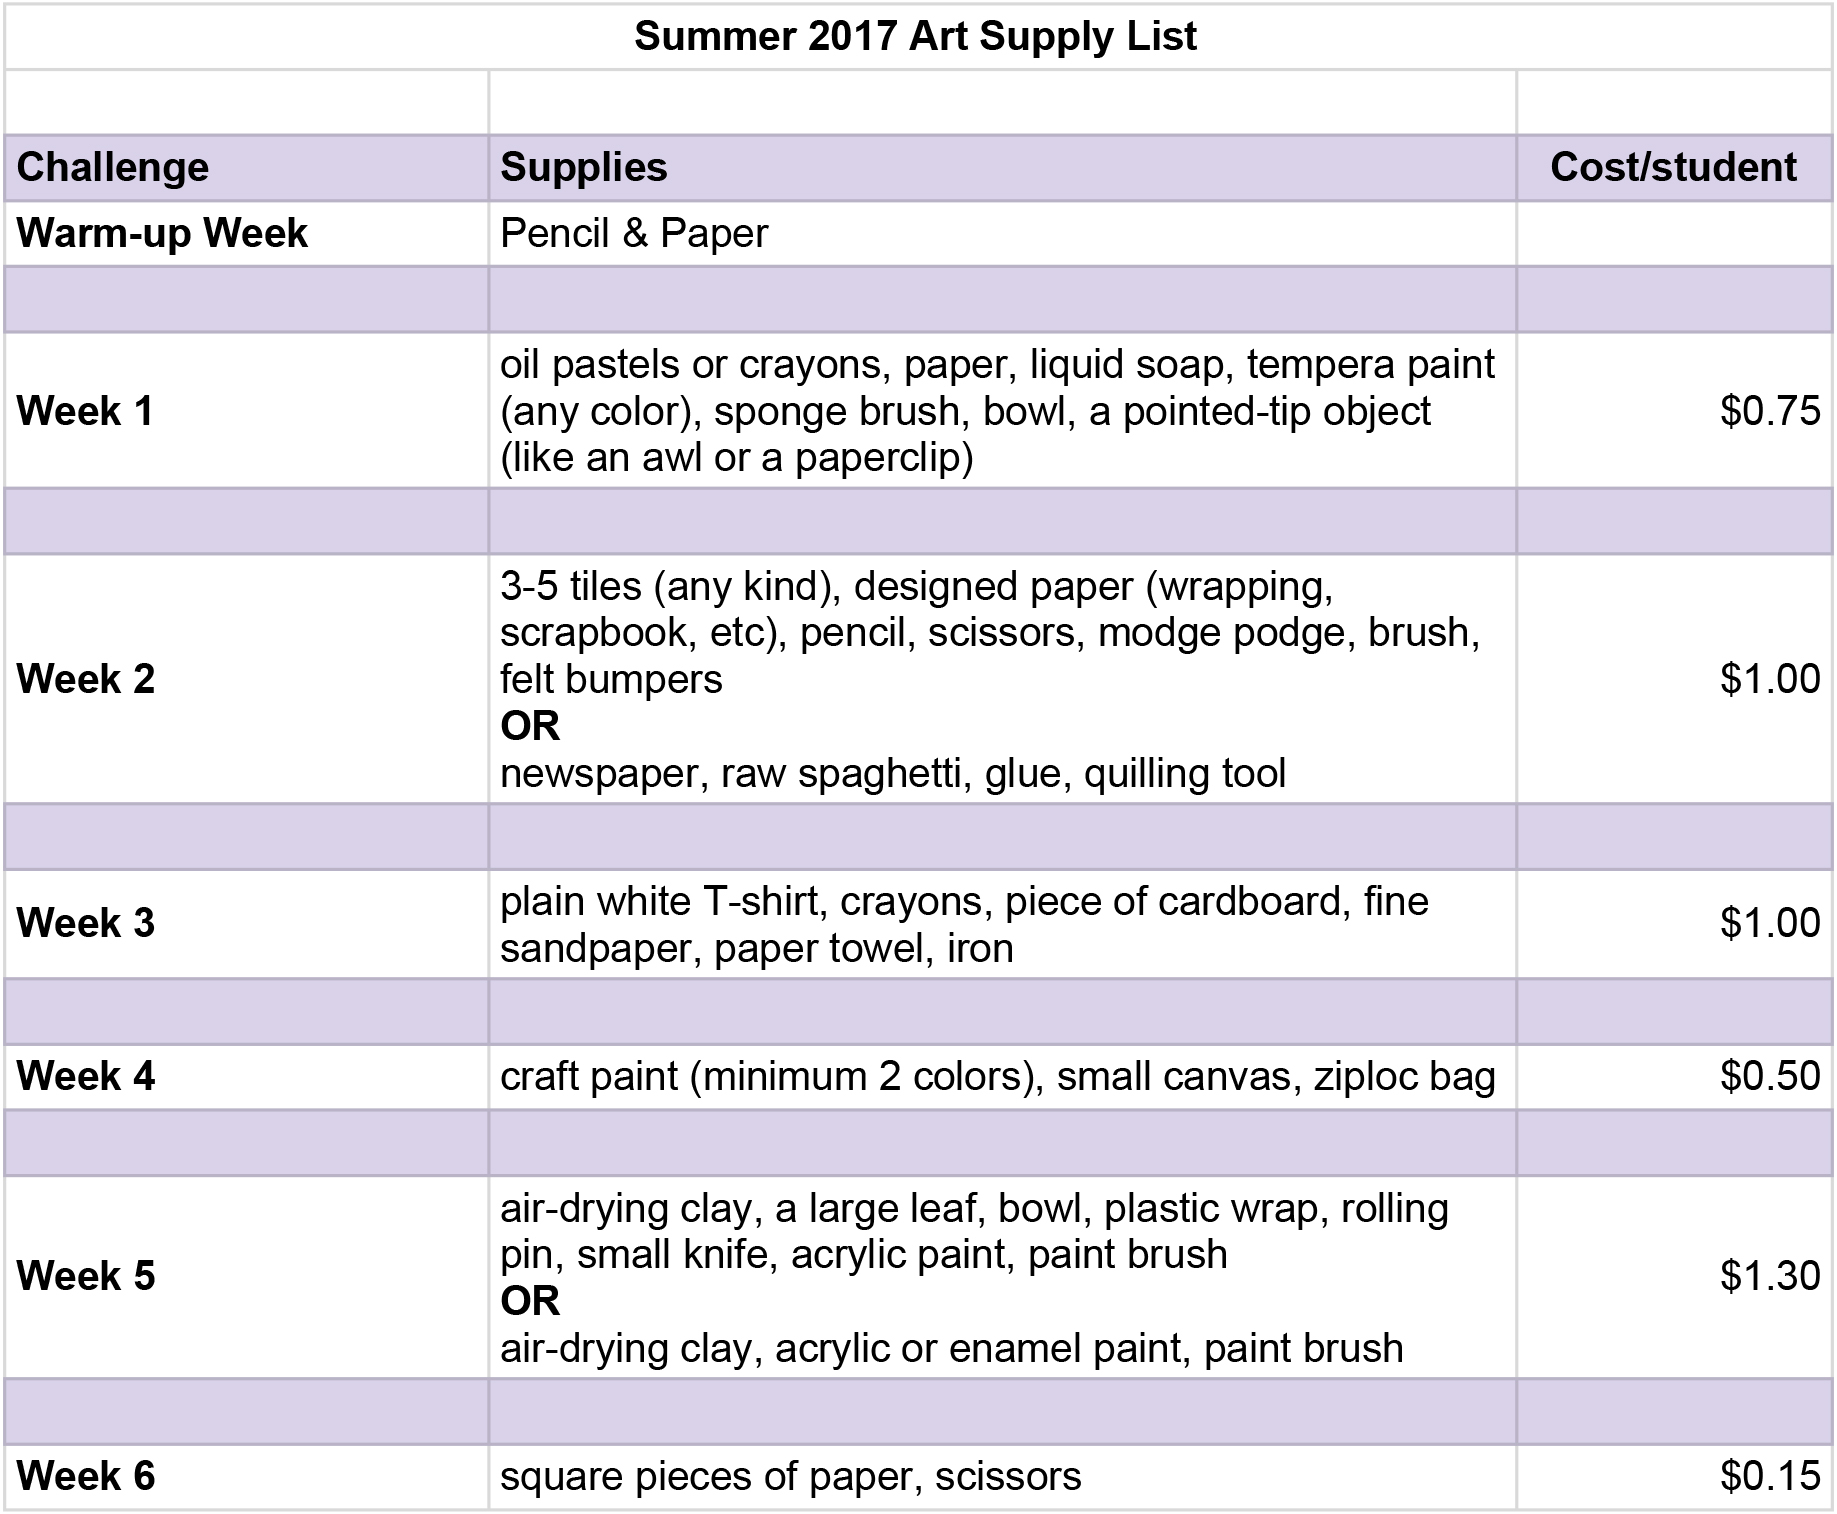 Summer 2017 Art supply list - For Website-2